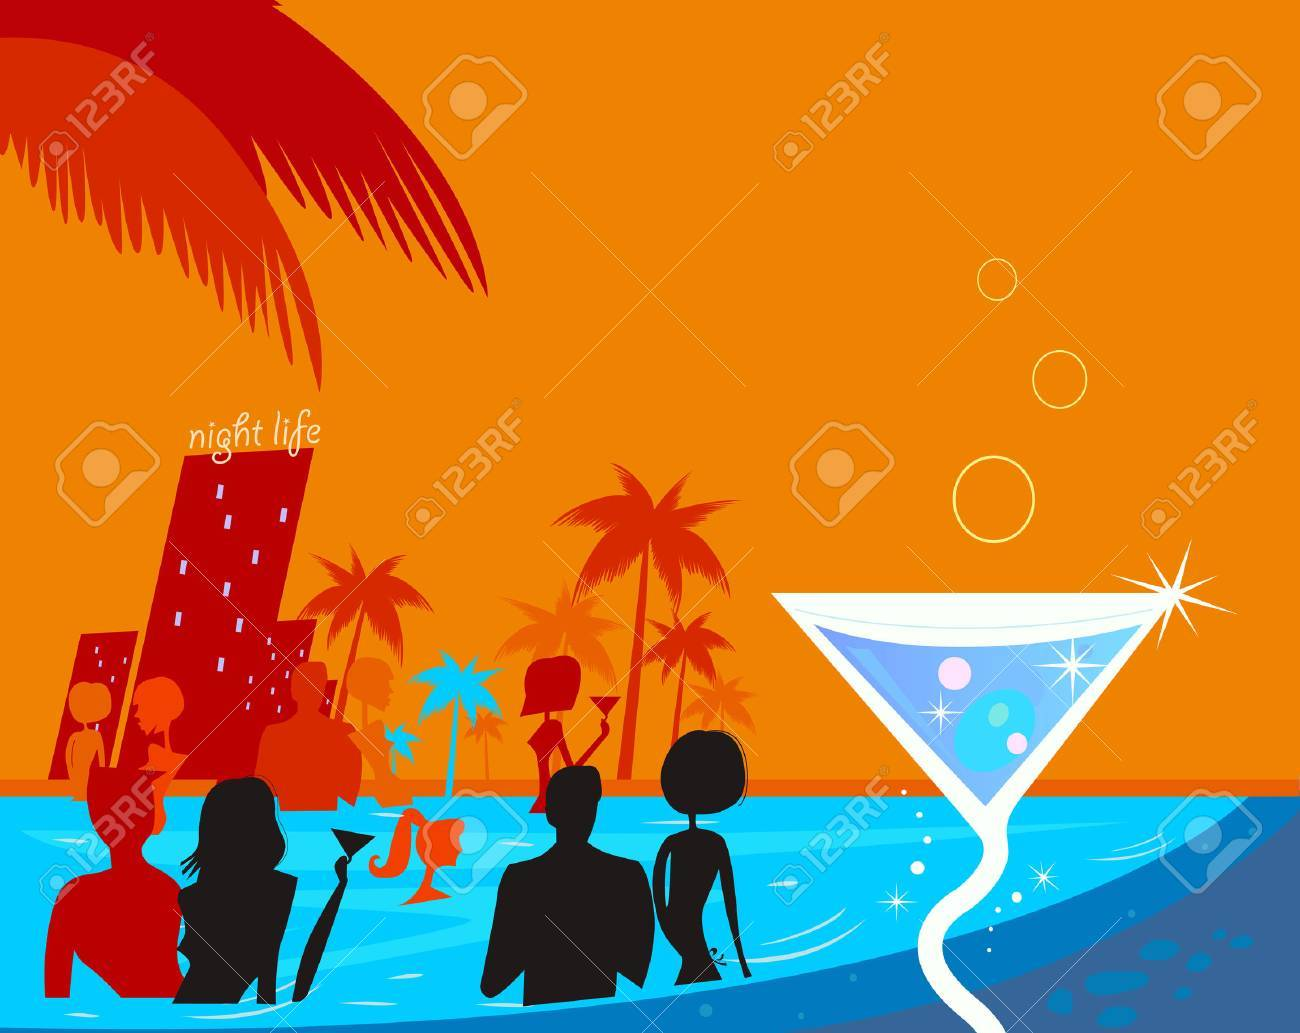 Water night party: People in pool & fresh Martini drink. Beach party people in night pool. Vector illustration in retro style. Beautiful blue - red vibrant colors! Stock Vector - 6478933